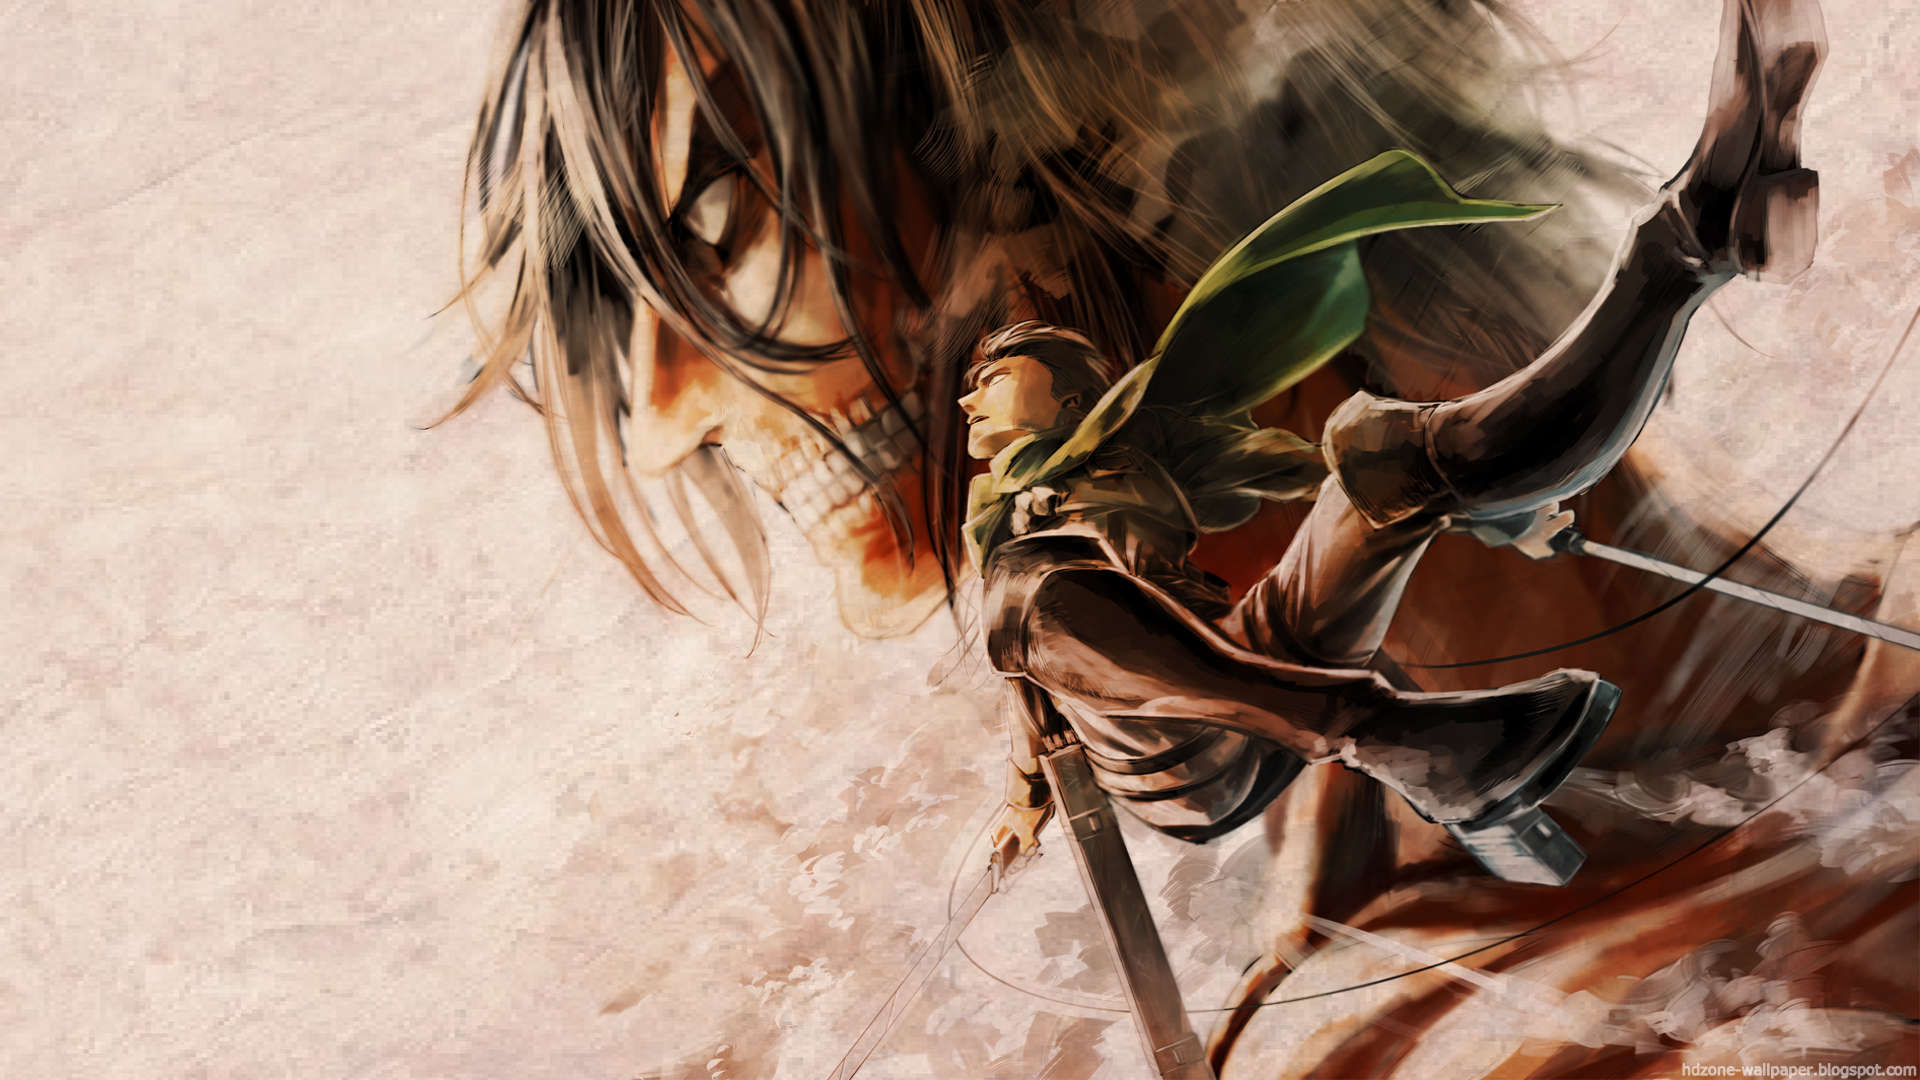 Hd Wallpaper Shingeki No Kyojin